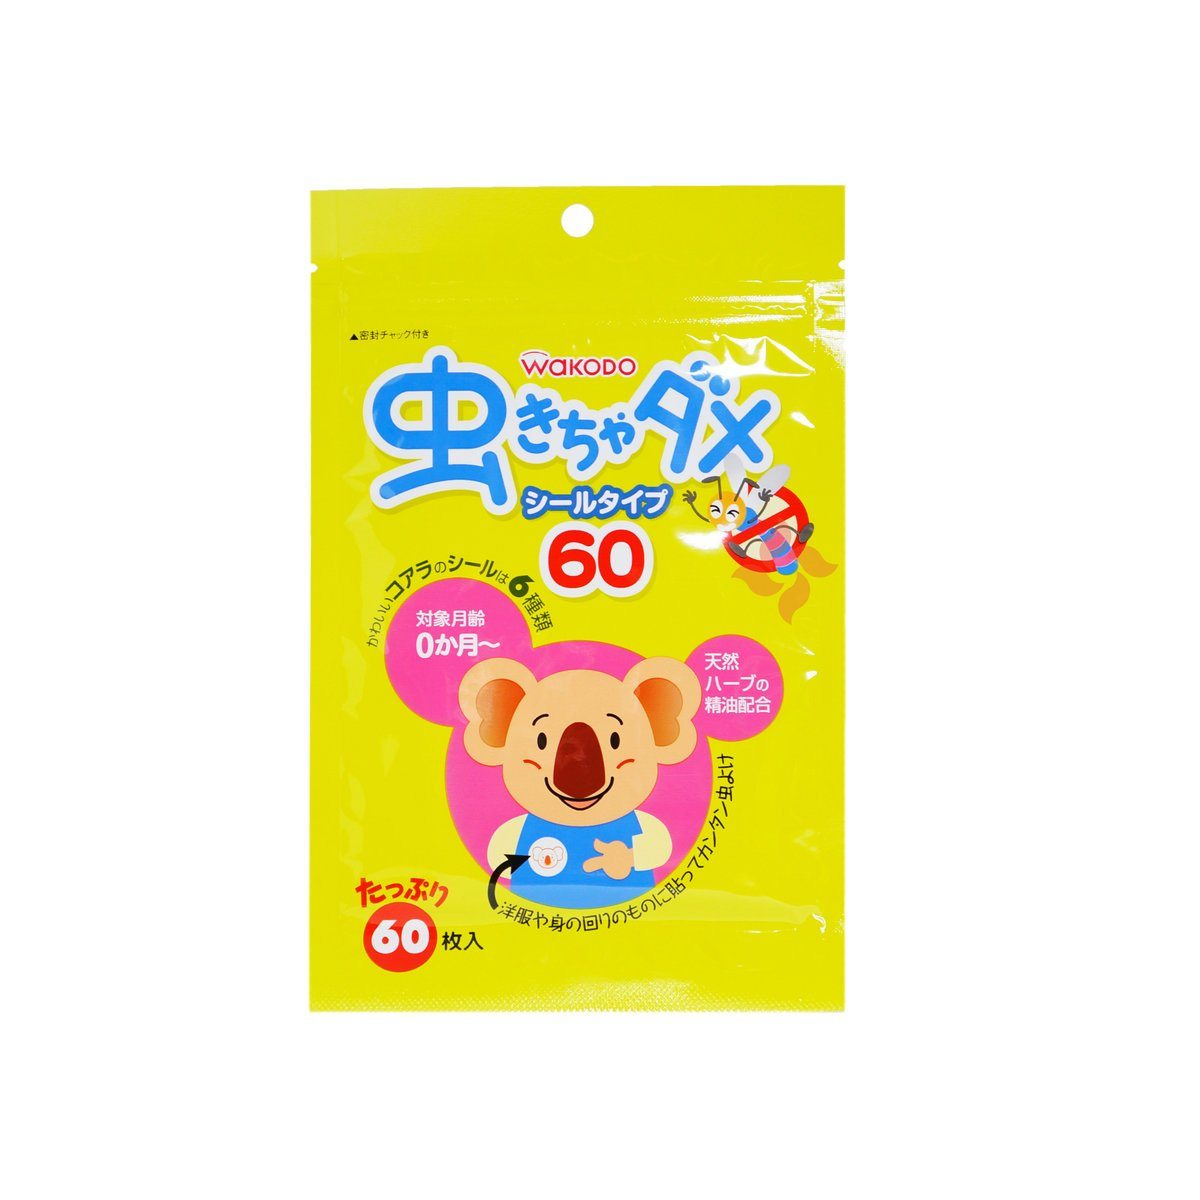 WAKODO - Mosquito Repellent Patch 60pcs - Made in Japan